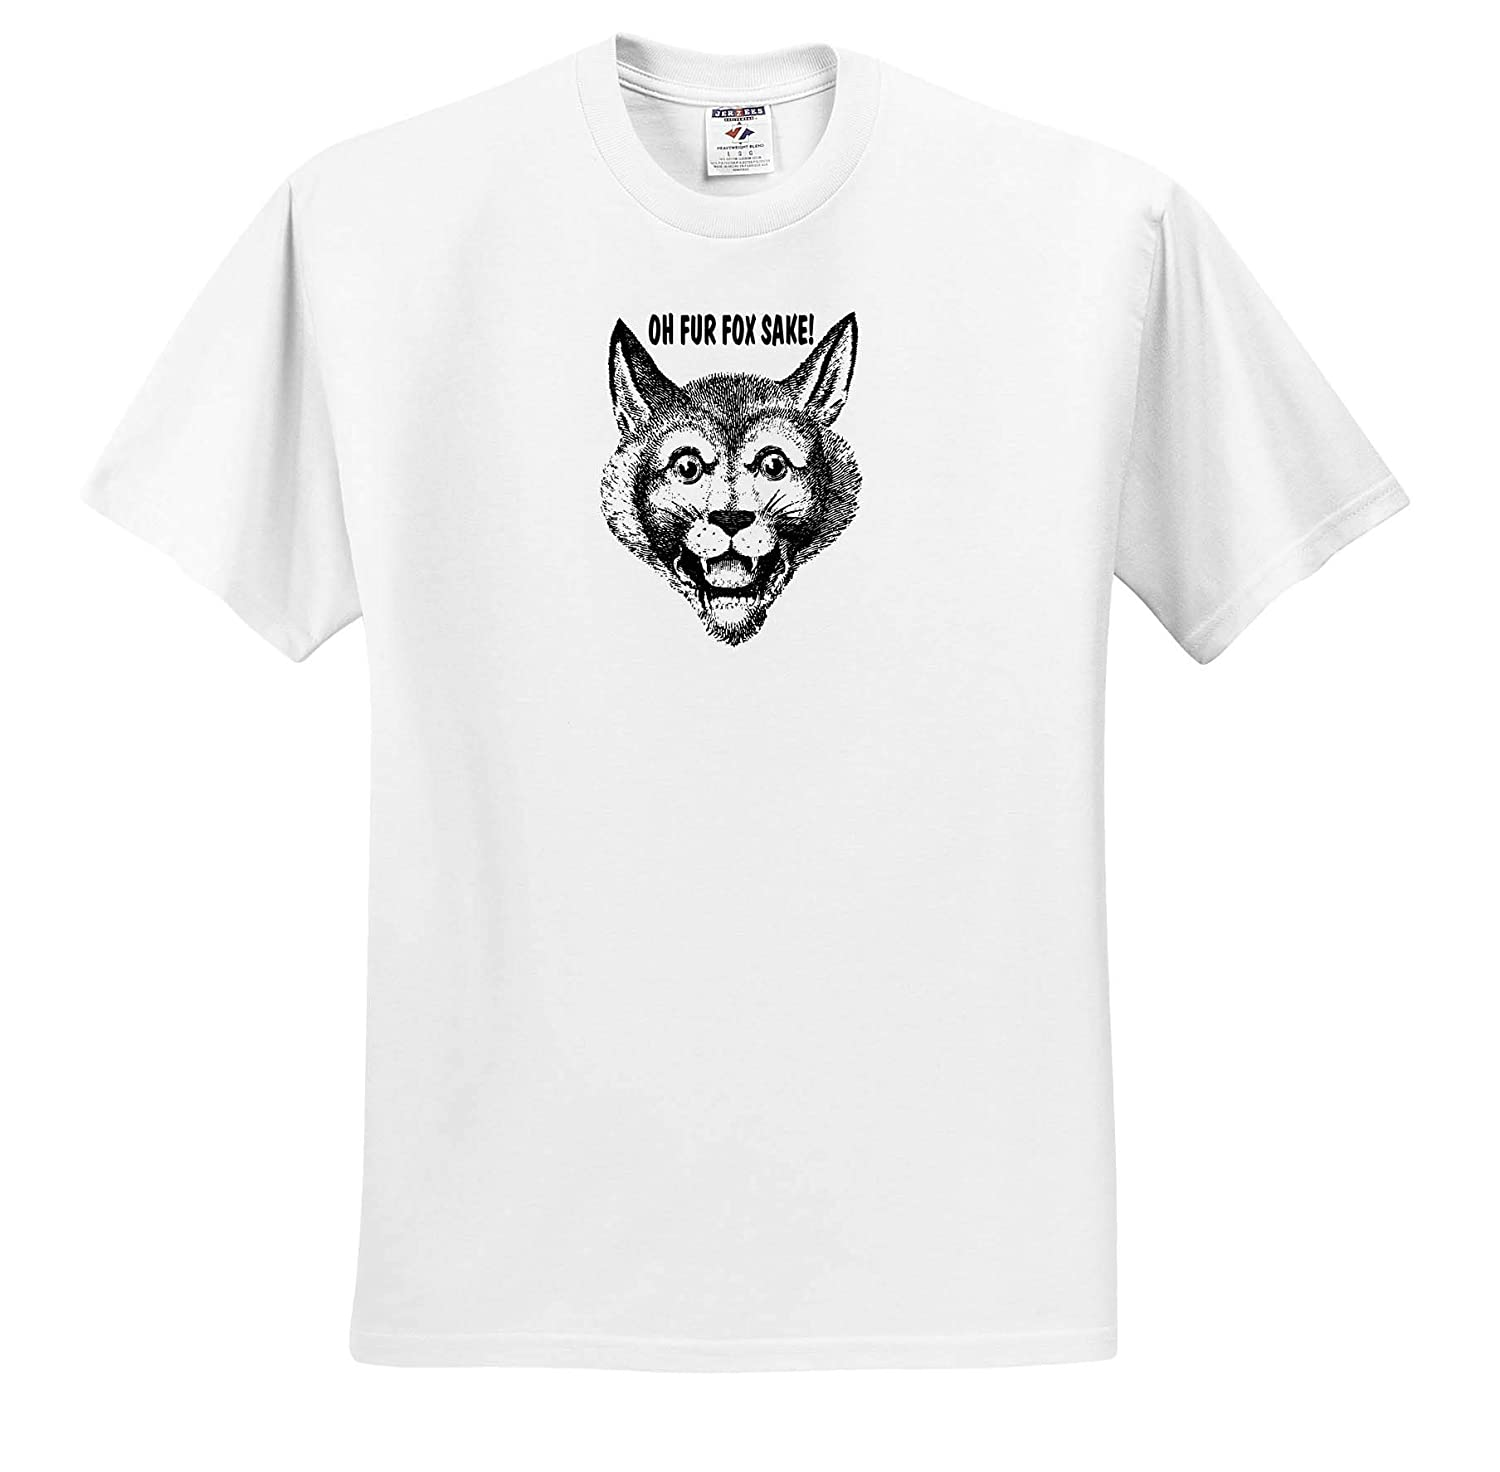 Oh Fur Fox Sake 3dRose Russ Billington Designs Funny Vintage Fox Image with Text in Black and White T-Shirts